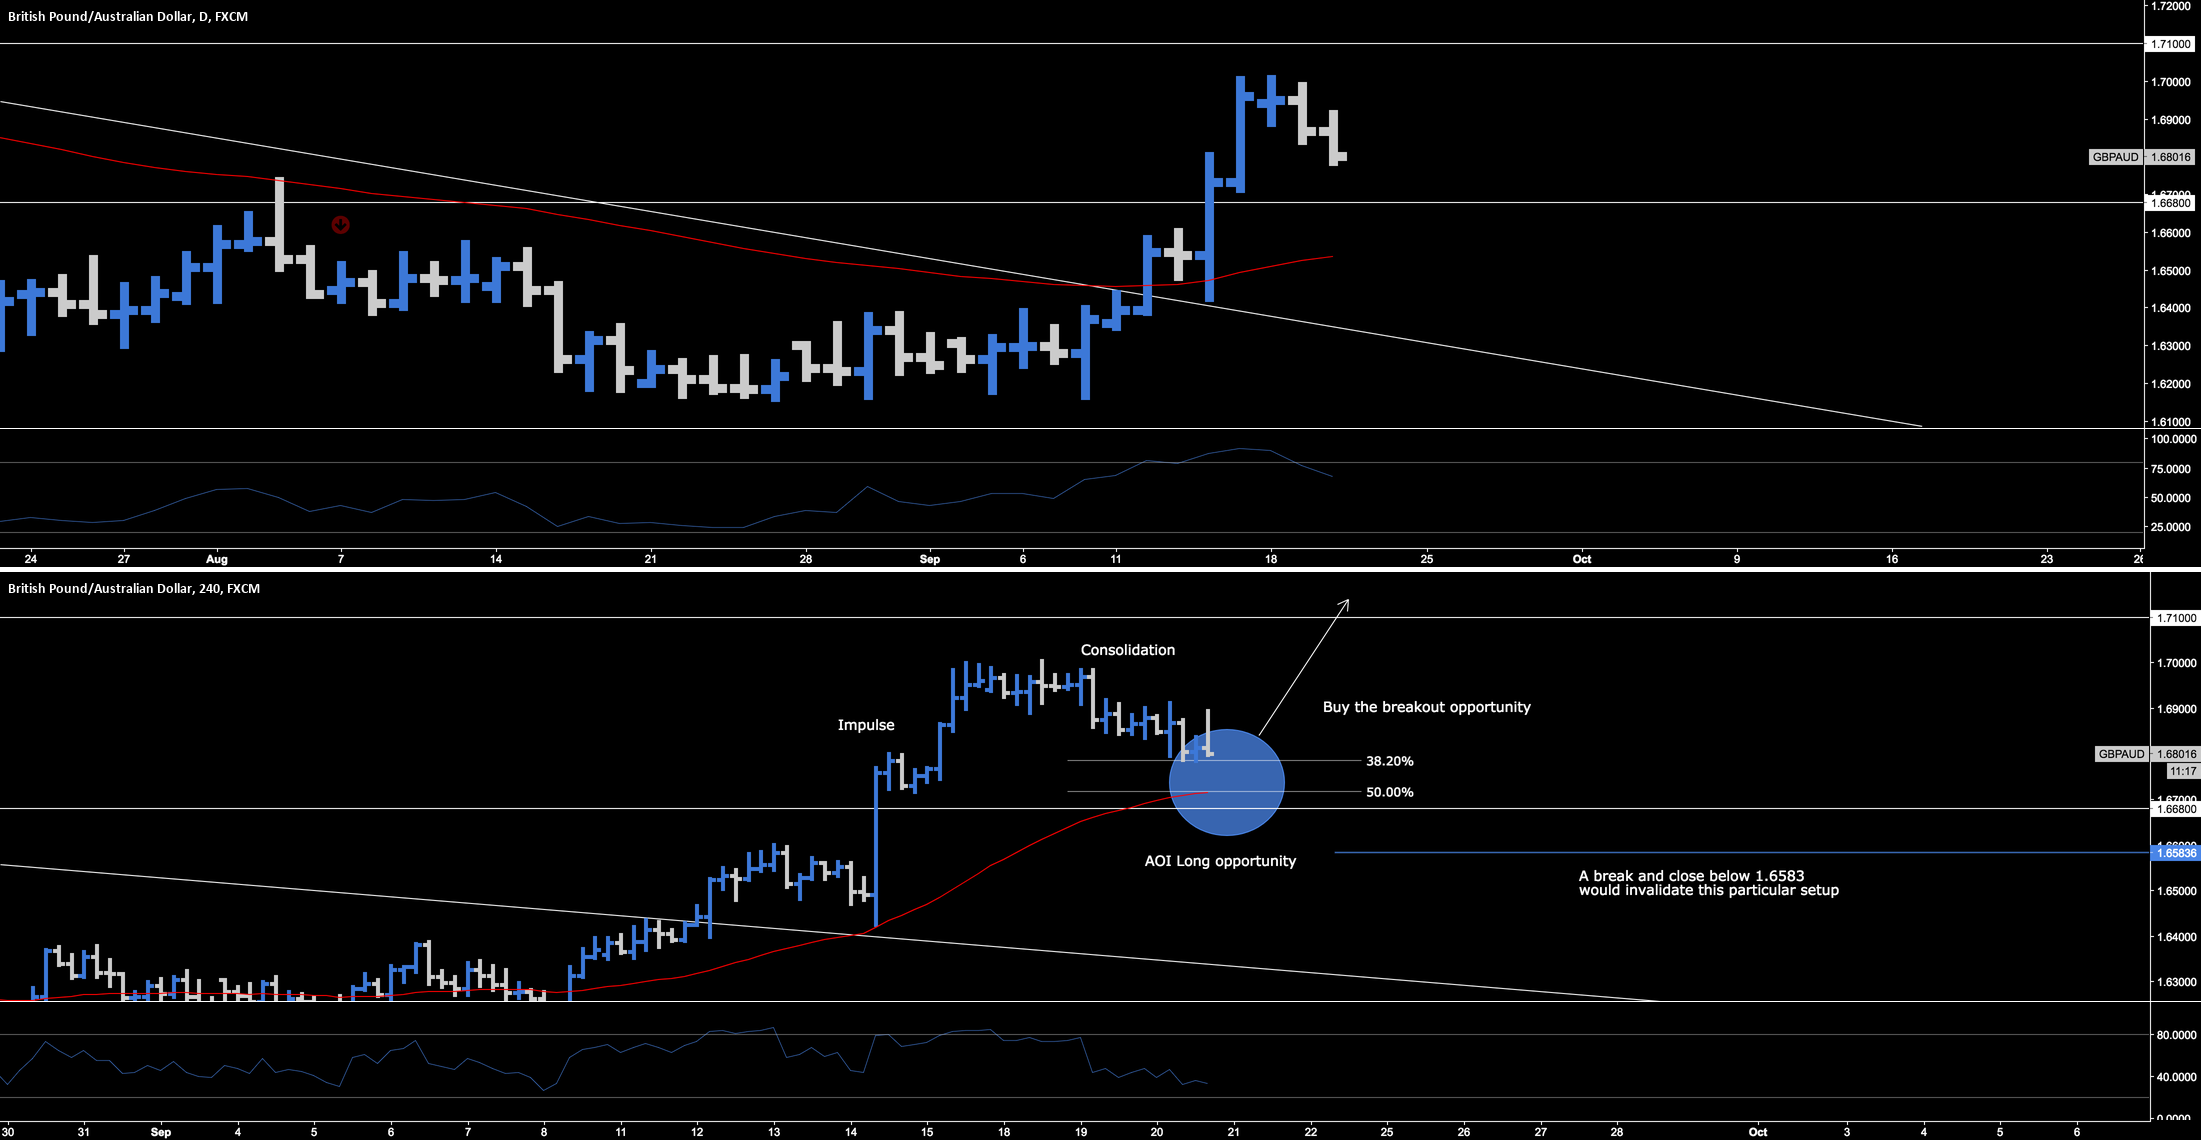 GBP.AUD > Long Opportunity